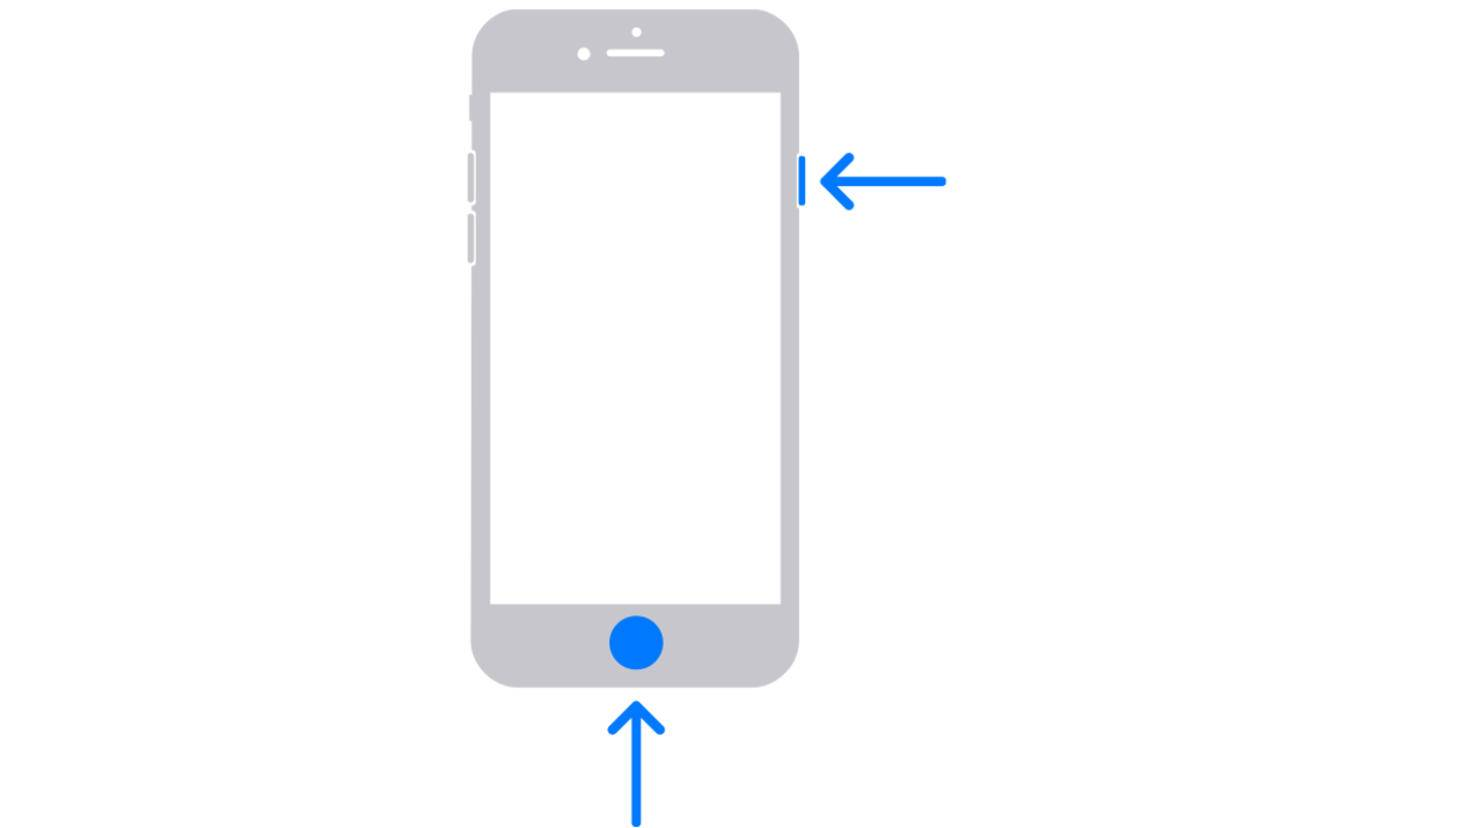 iPhone with home button screenshot